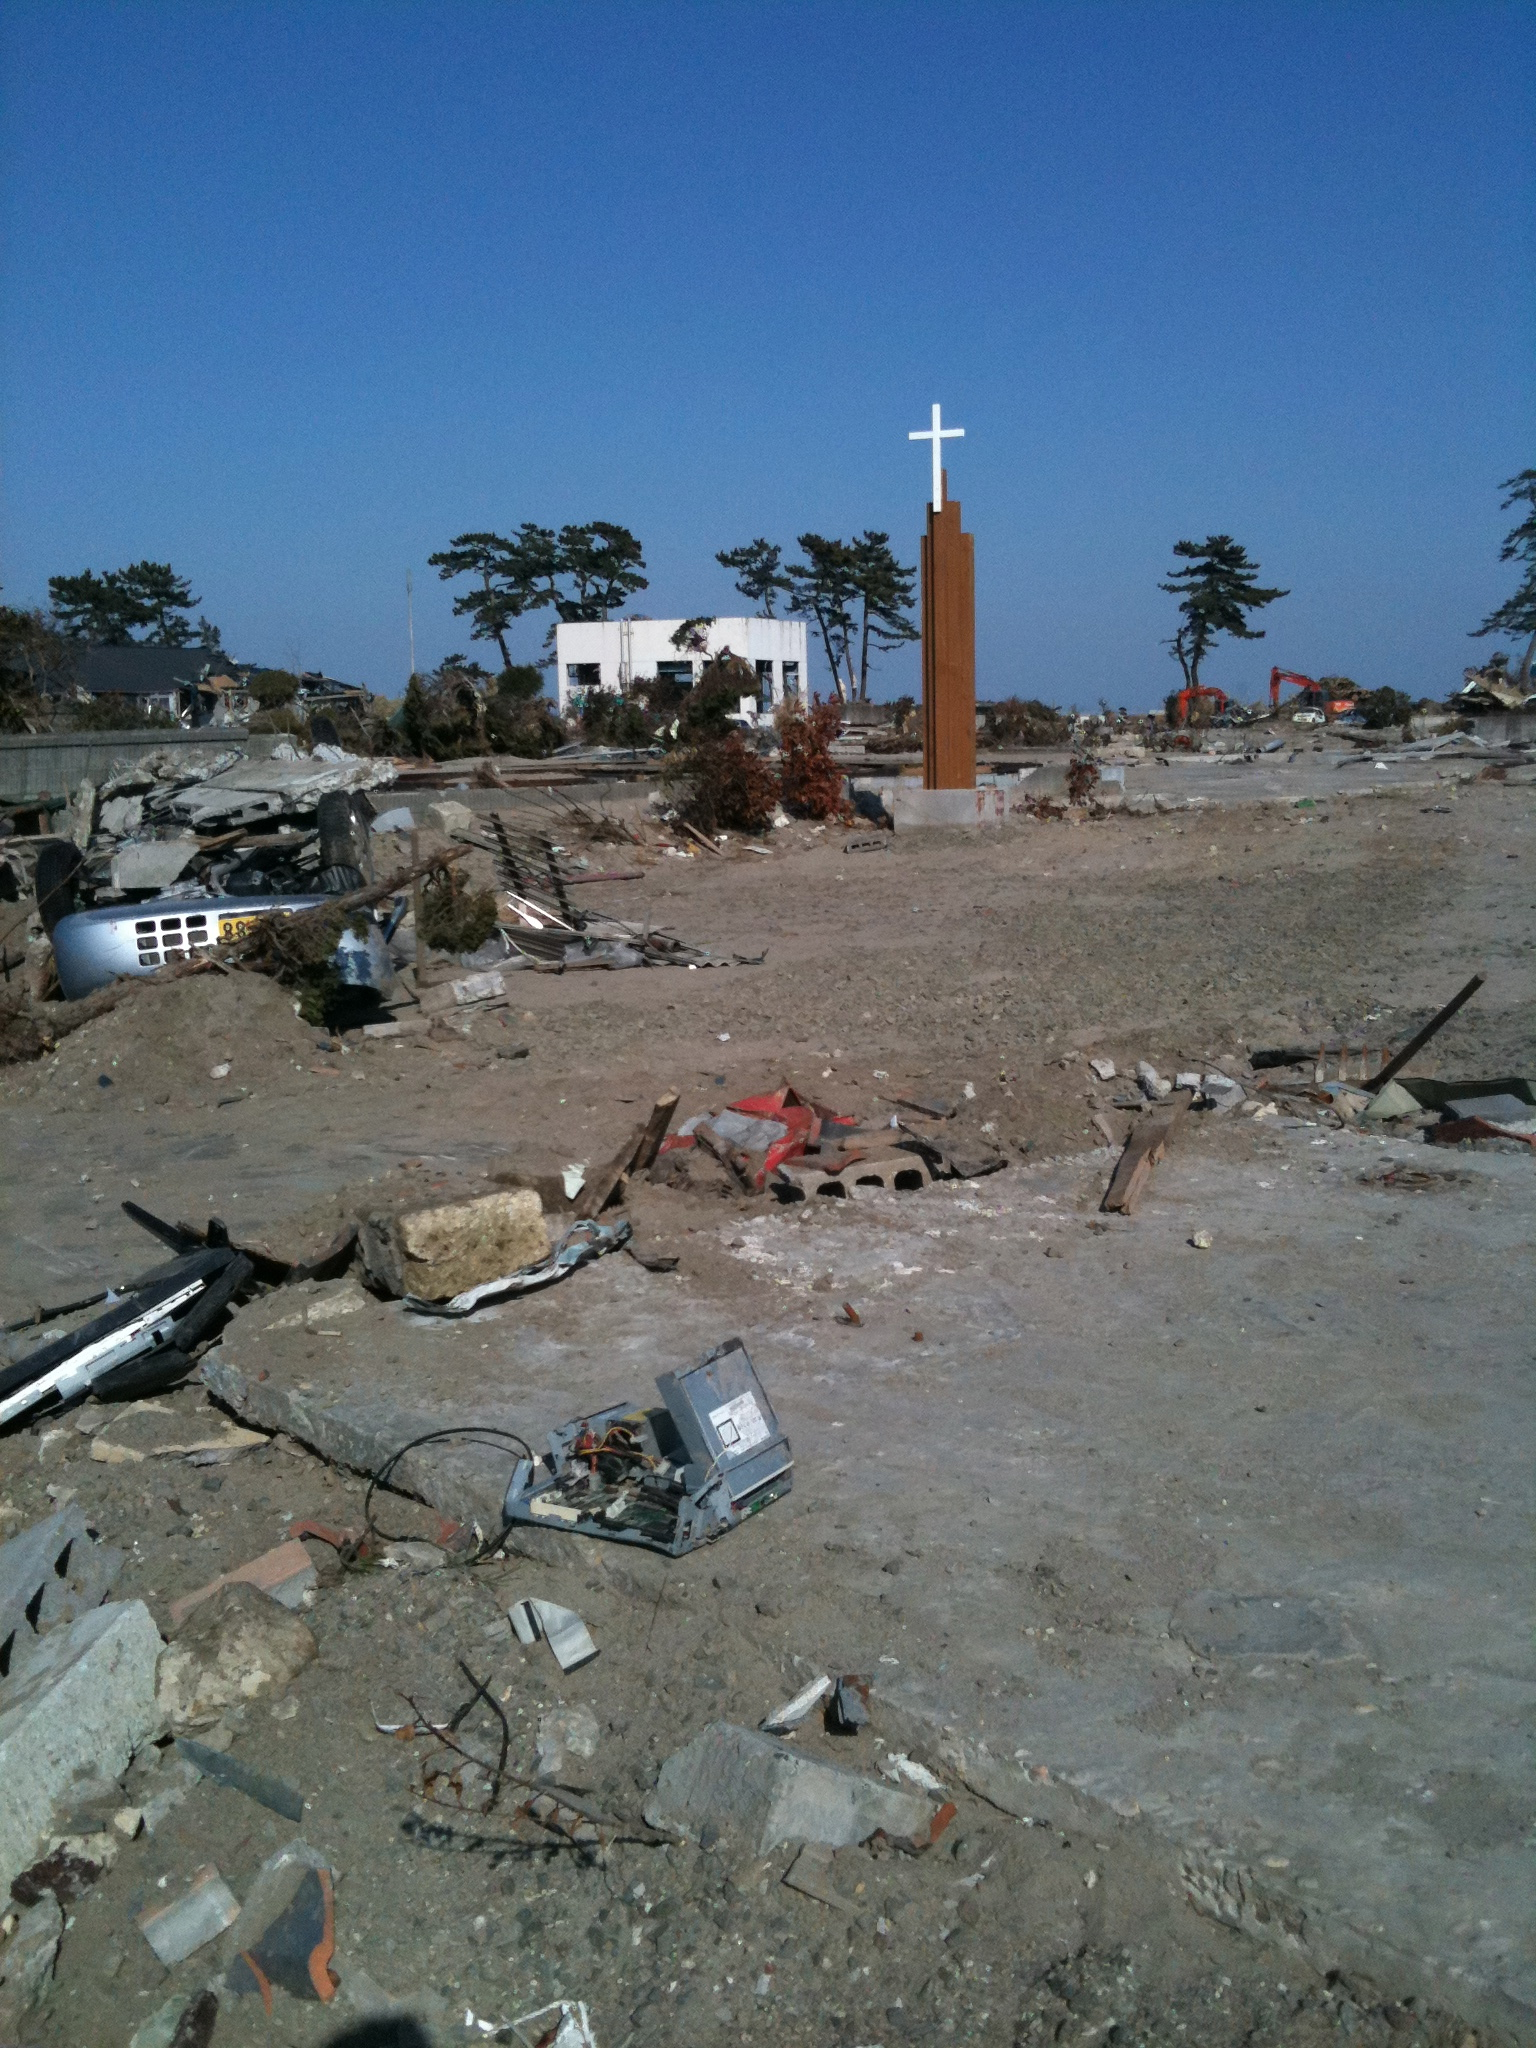 On the site of the Seaside Bible Chapel (only the foundation was left) after the tsunami ravaged the coastline of Japan on March 11, 2011.